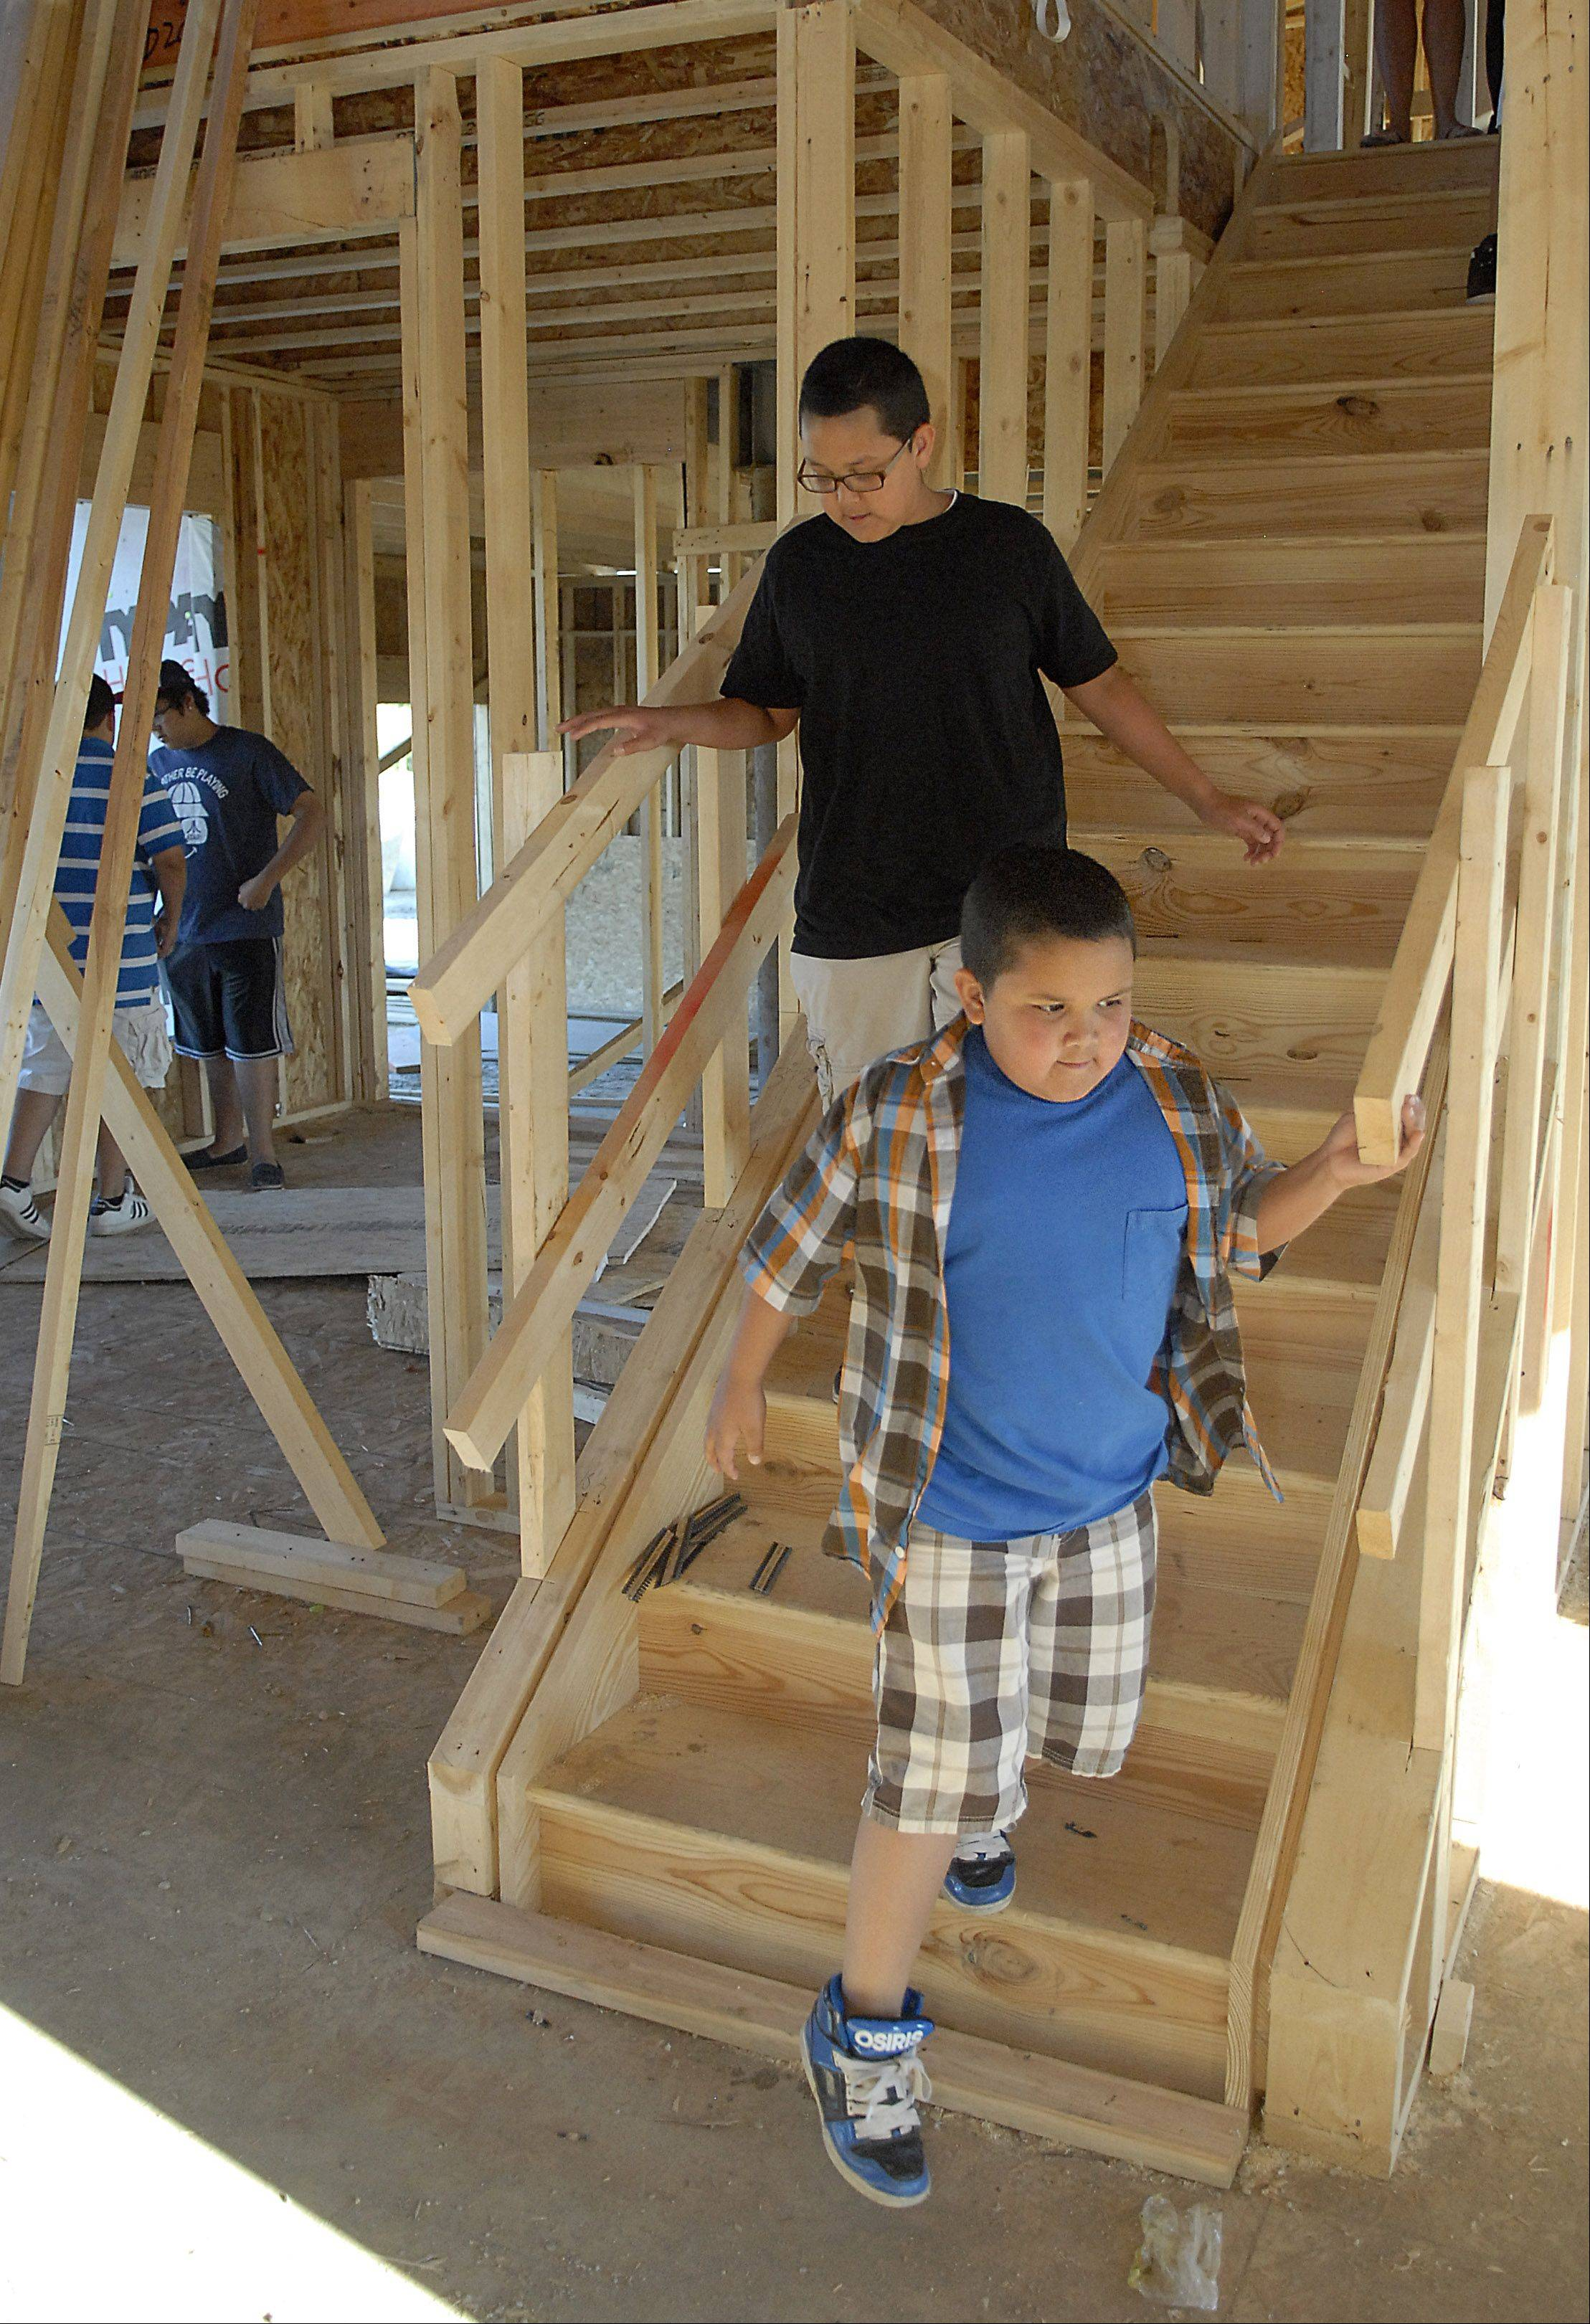 Stephen Lopez, 11, and brother Matthew, 7, investigate their new home being constructed. Michelle Lopez and her boyfriend, Peter Truschke, are having a home built in the Winchester Glen subdivision in Carpentersville. They expect it to be completed by August.